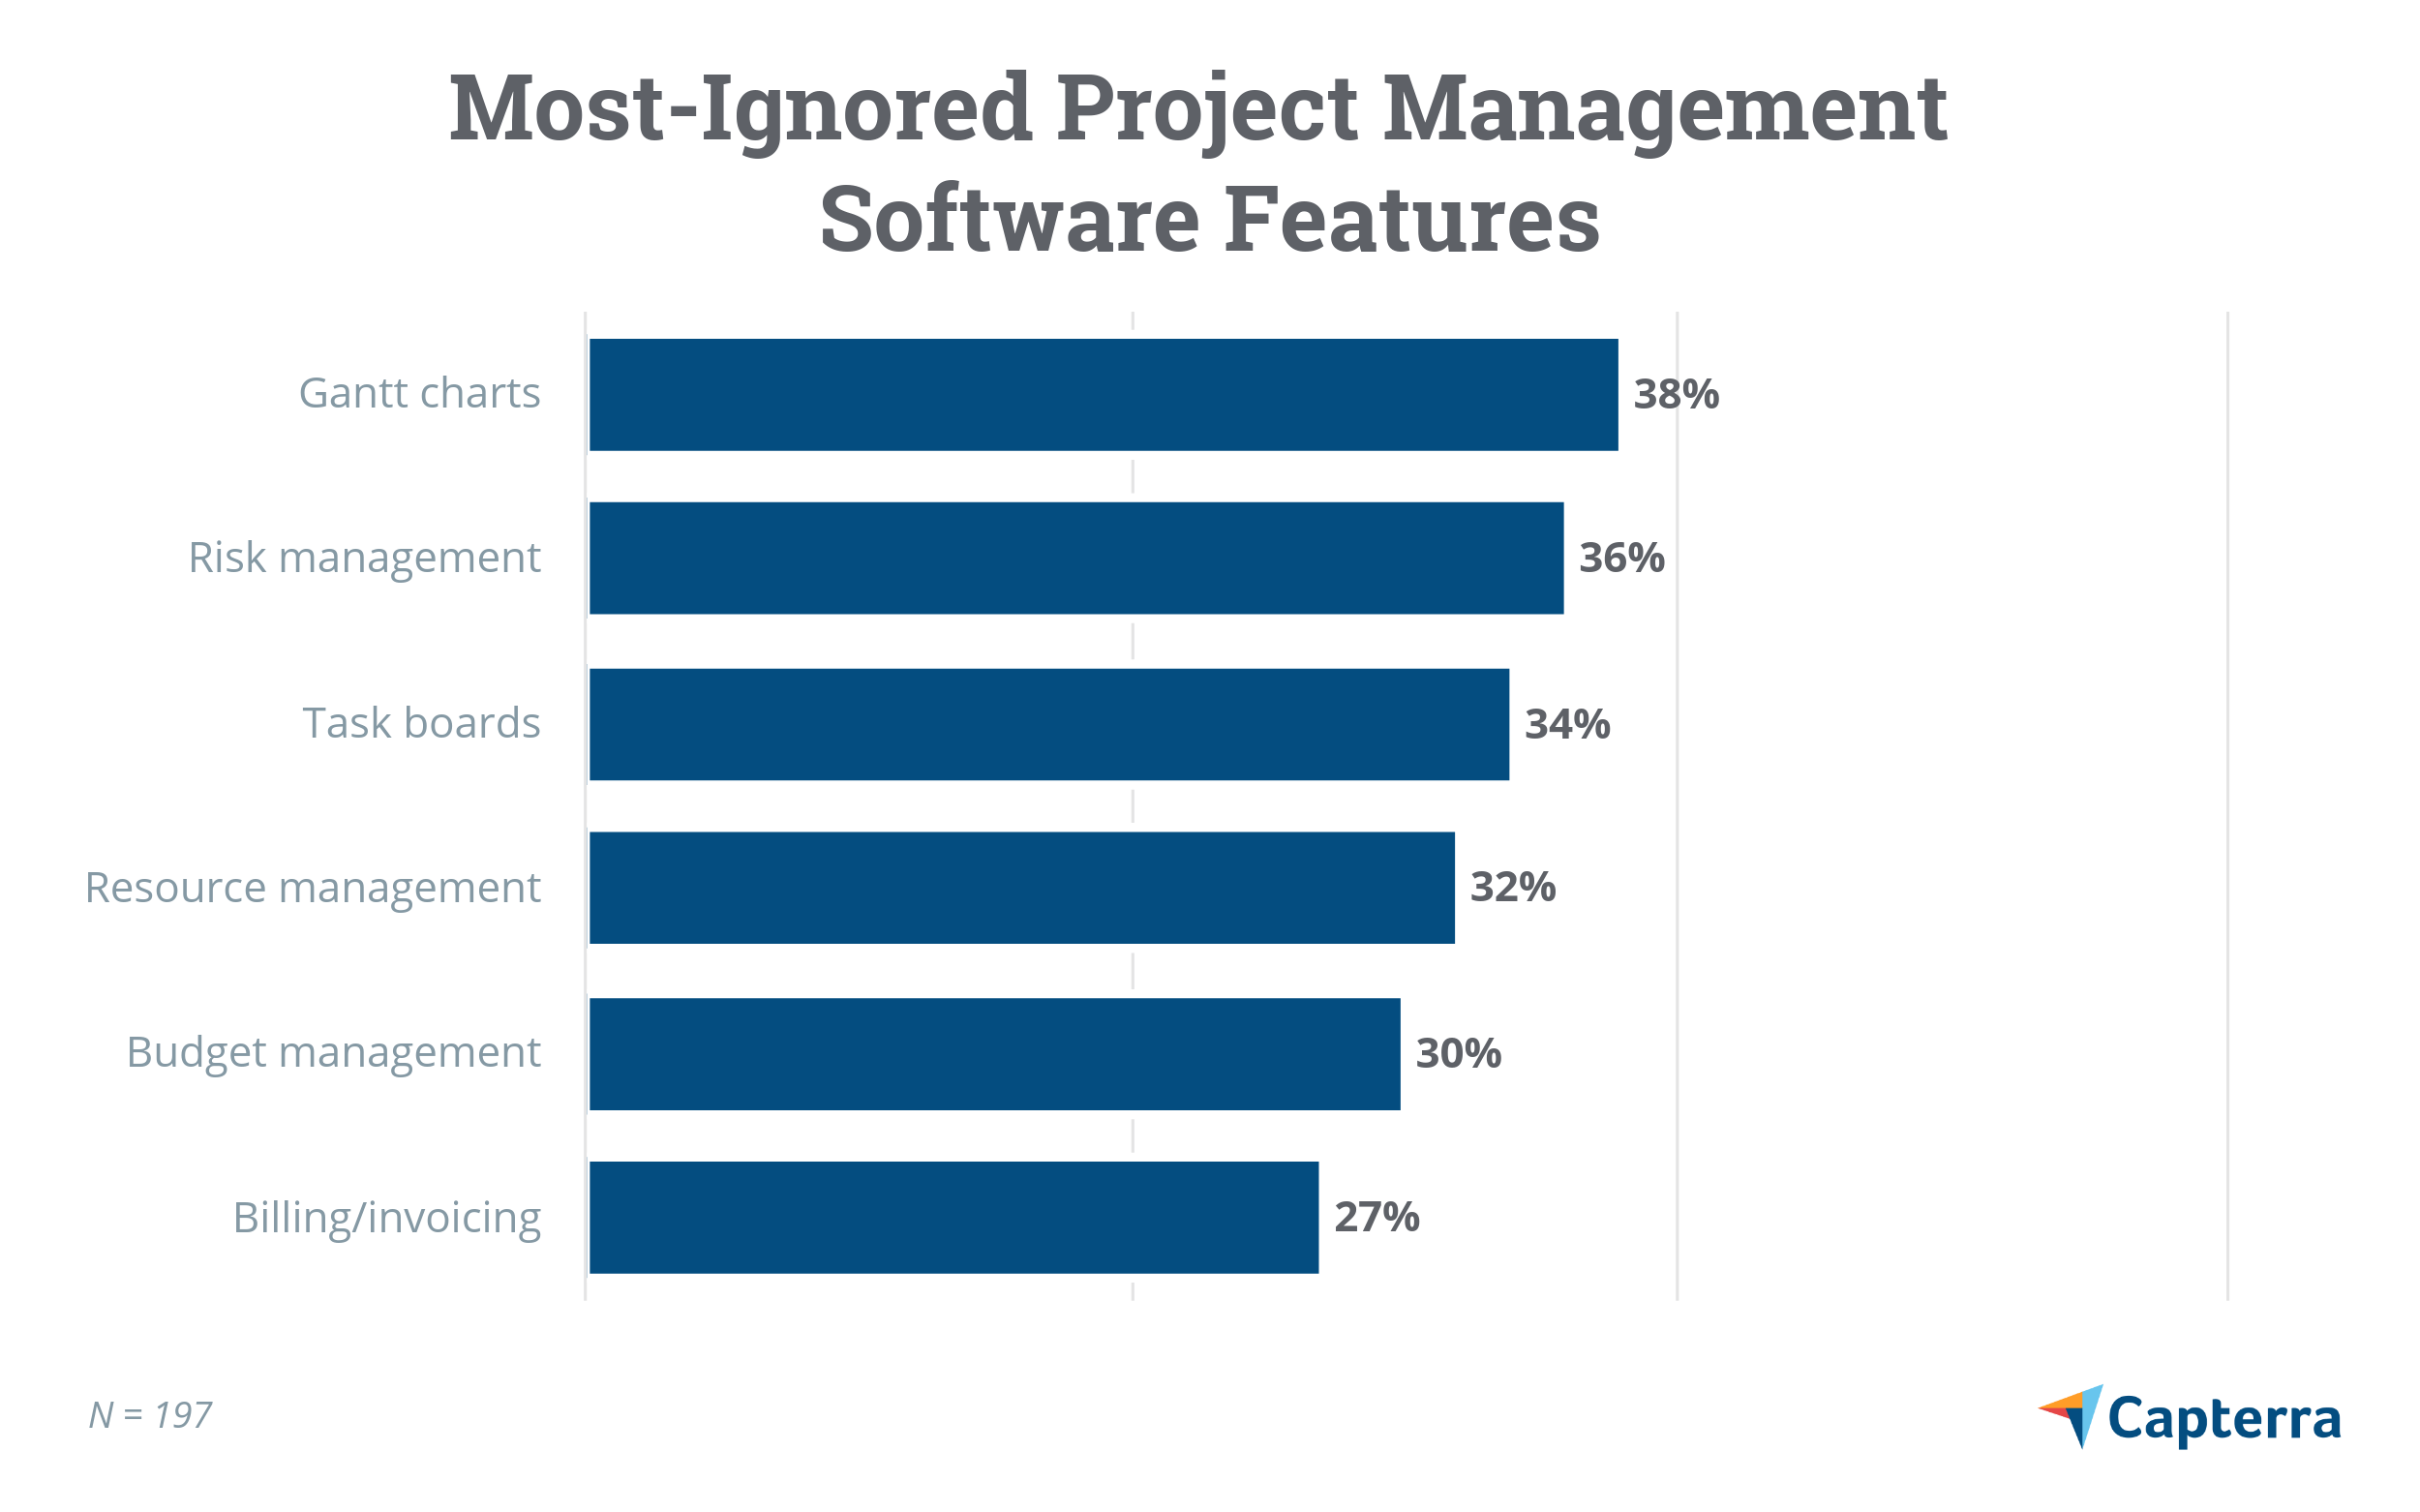 Most ignored project management software features